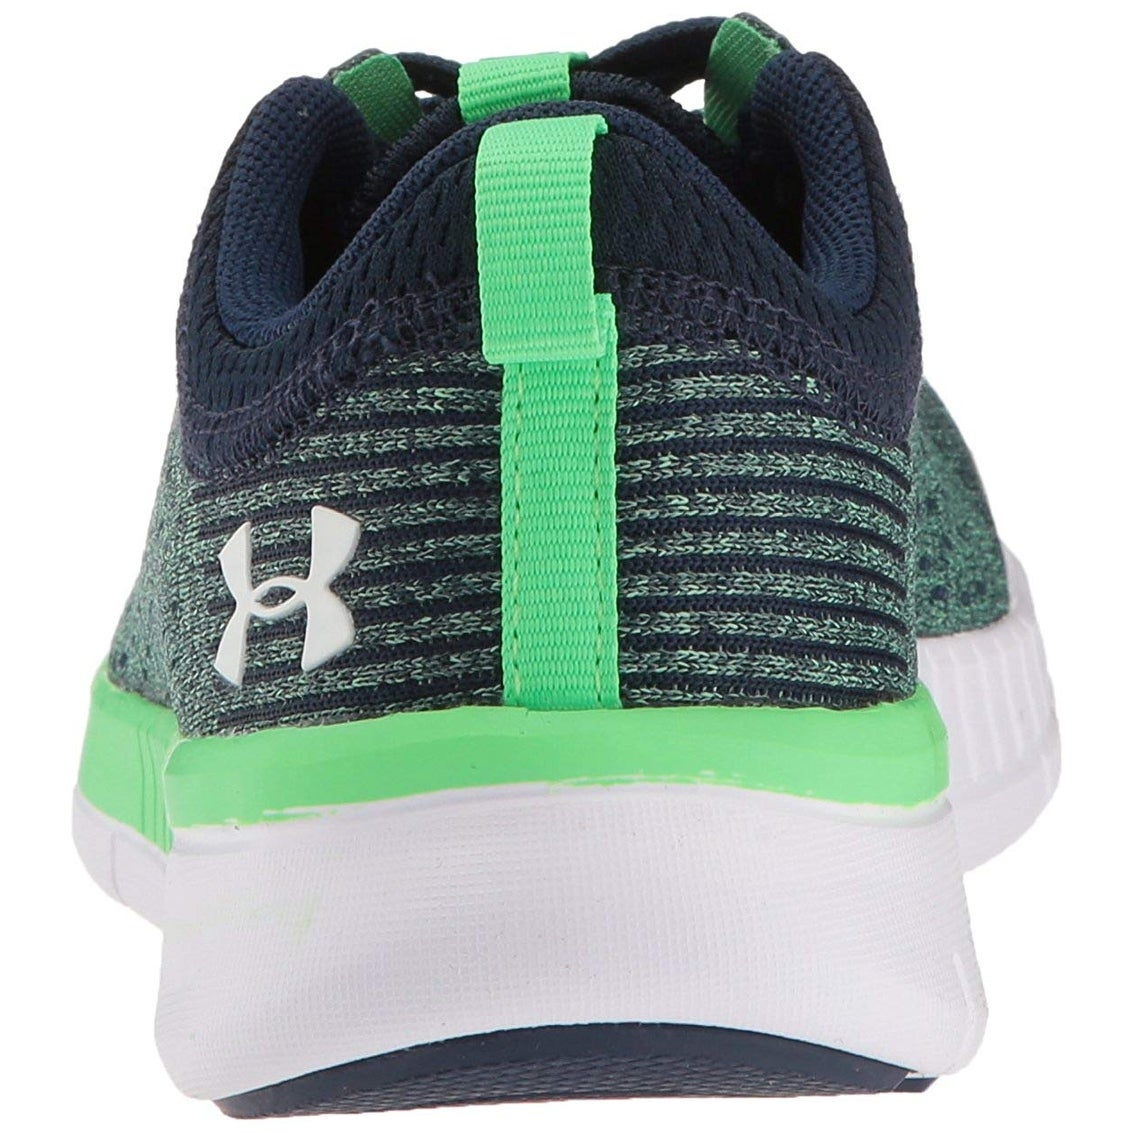 e24aa7f14235 Shop Under Armour Kids  Grade School Lightning 2 Sneaker - 3.5 M US - Free  Shipping Today - Overstock - 25692915